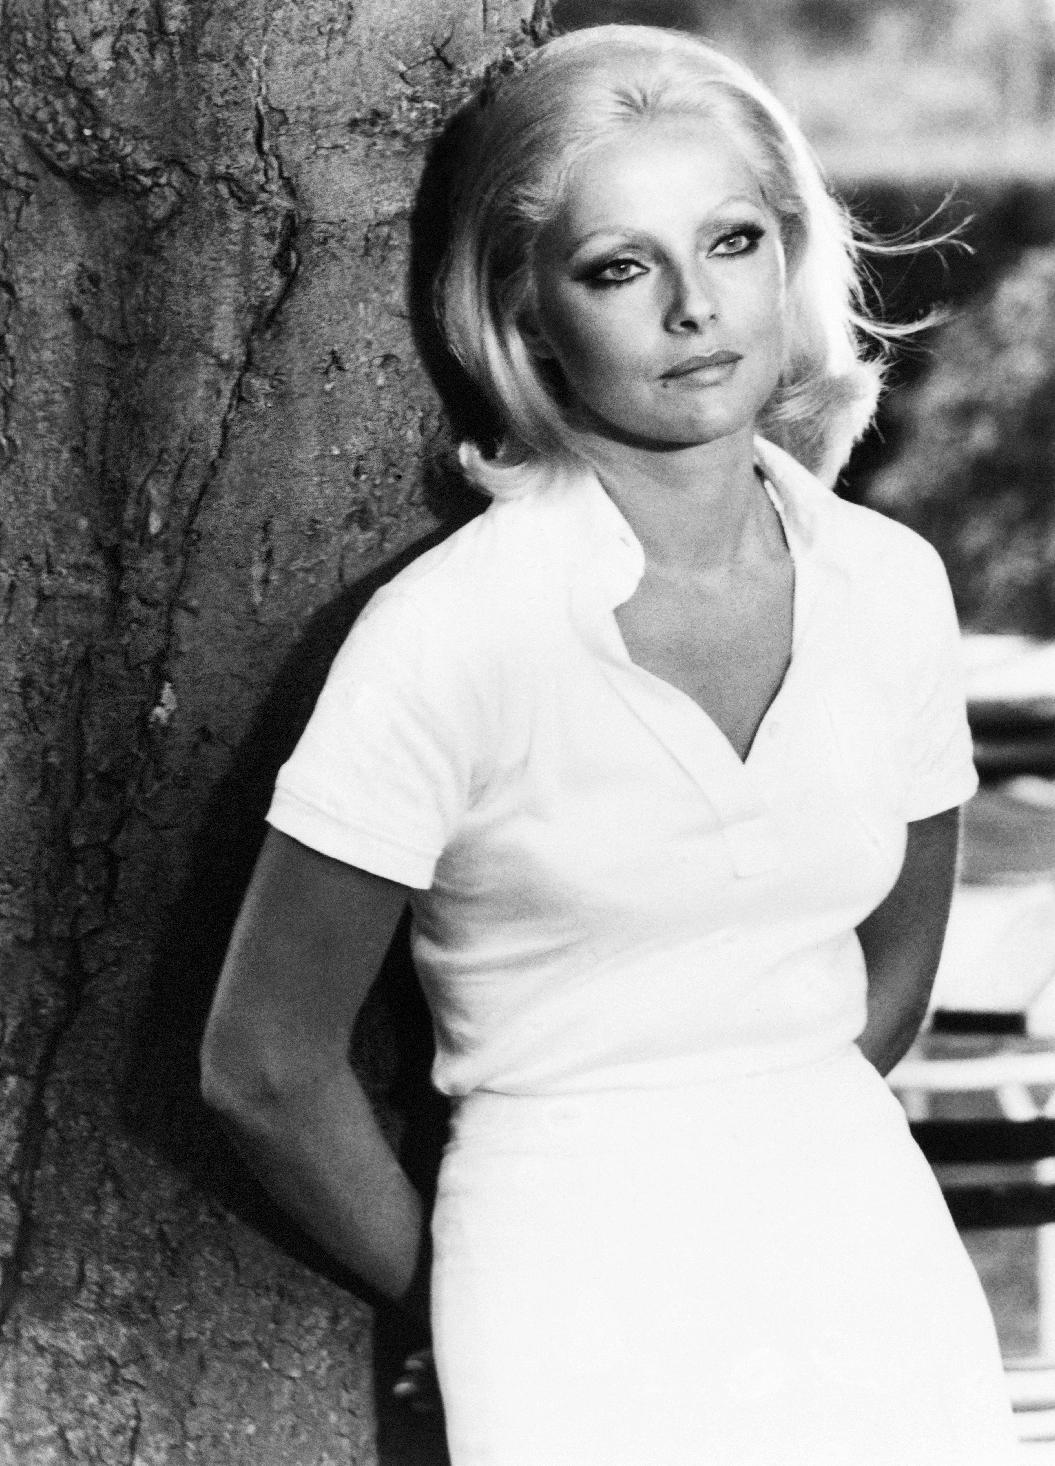 Italian actress Virna Lisi dead at 78